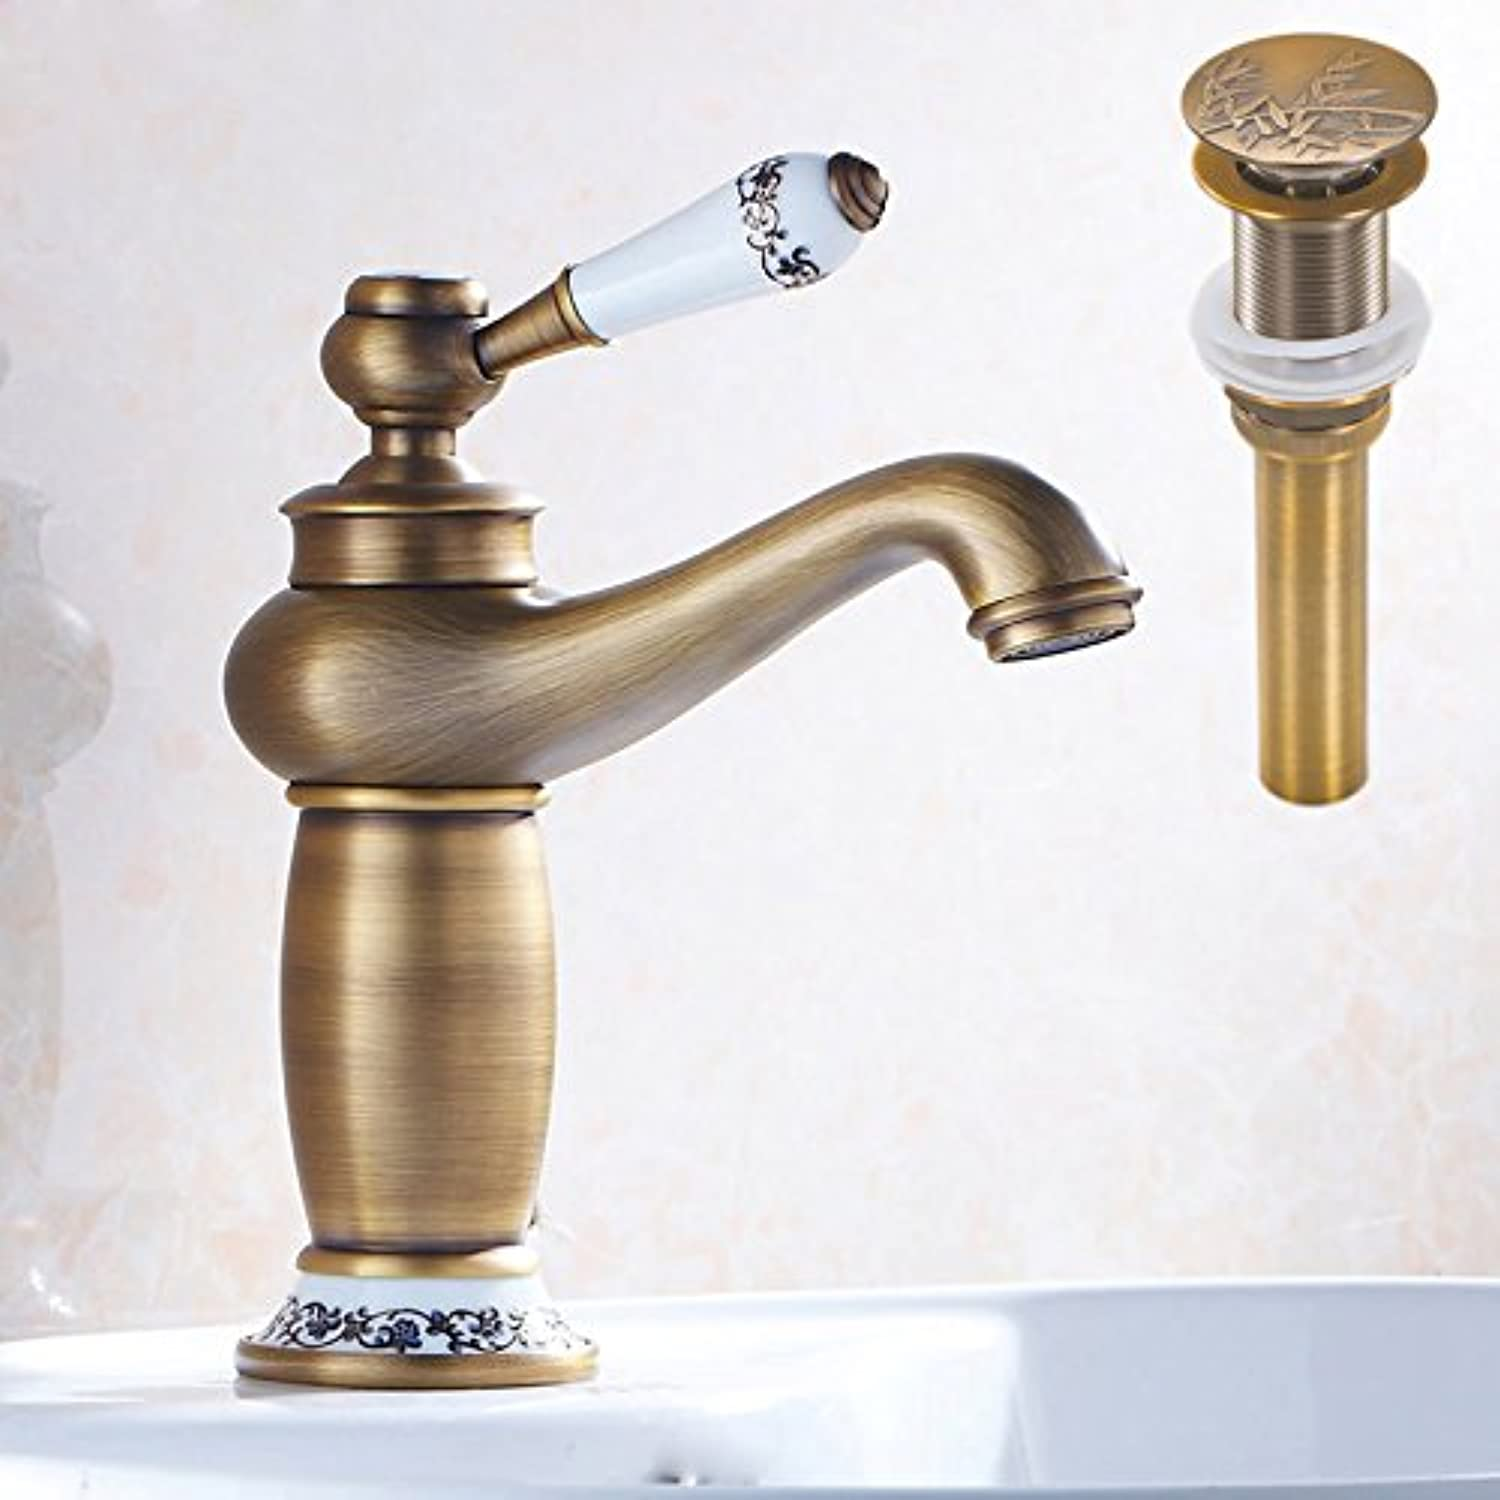 U-Enjoy Single Lever Bathroom Top Quality Vessel Sink Mixer Taps Deck Mounted Brass Water Faucet with Sink Pop Up Drain (Red)